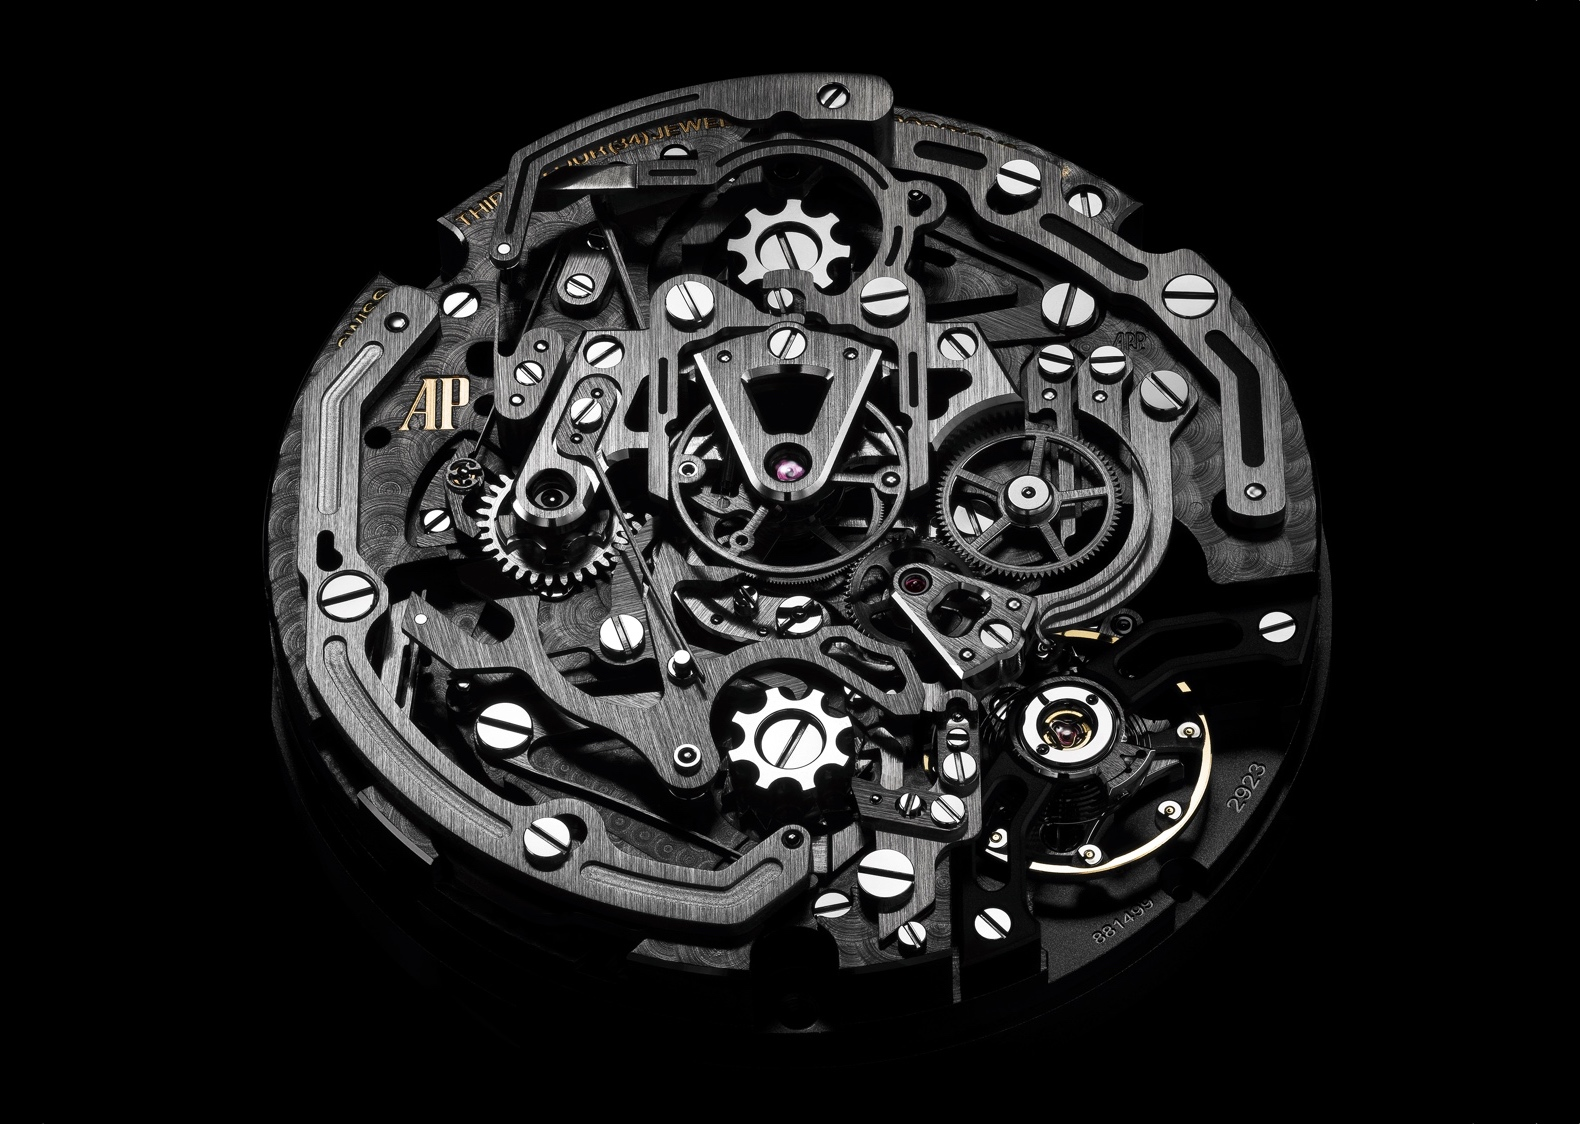 Audemars Piguet Royal Oak Concept Schumacher calibre